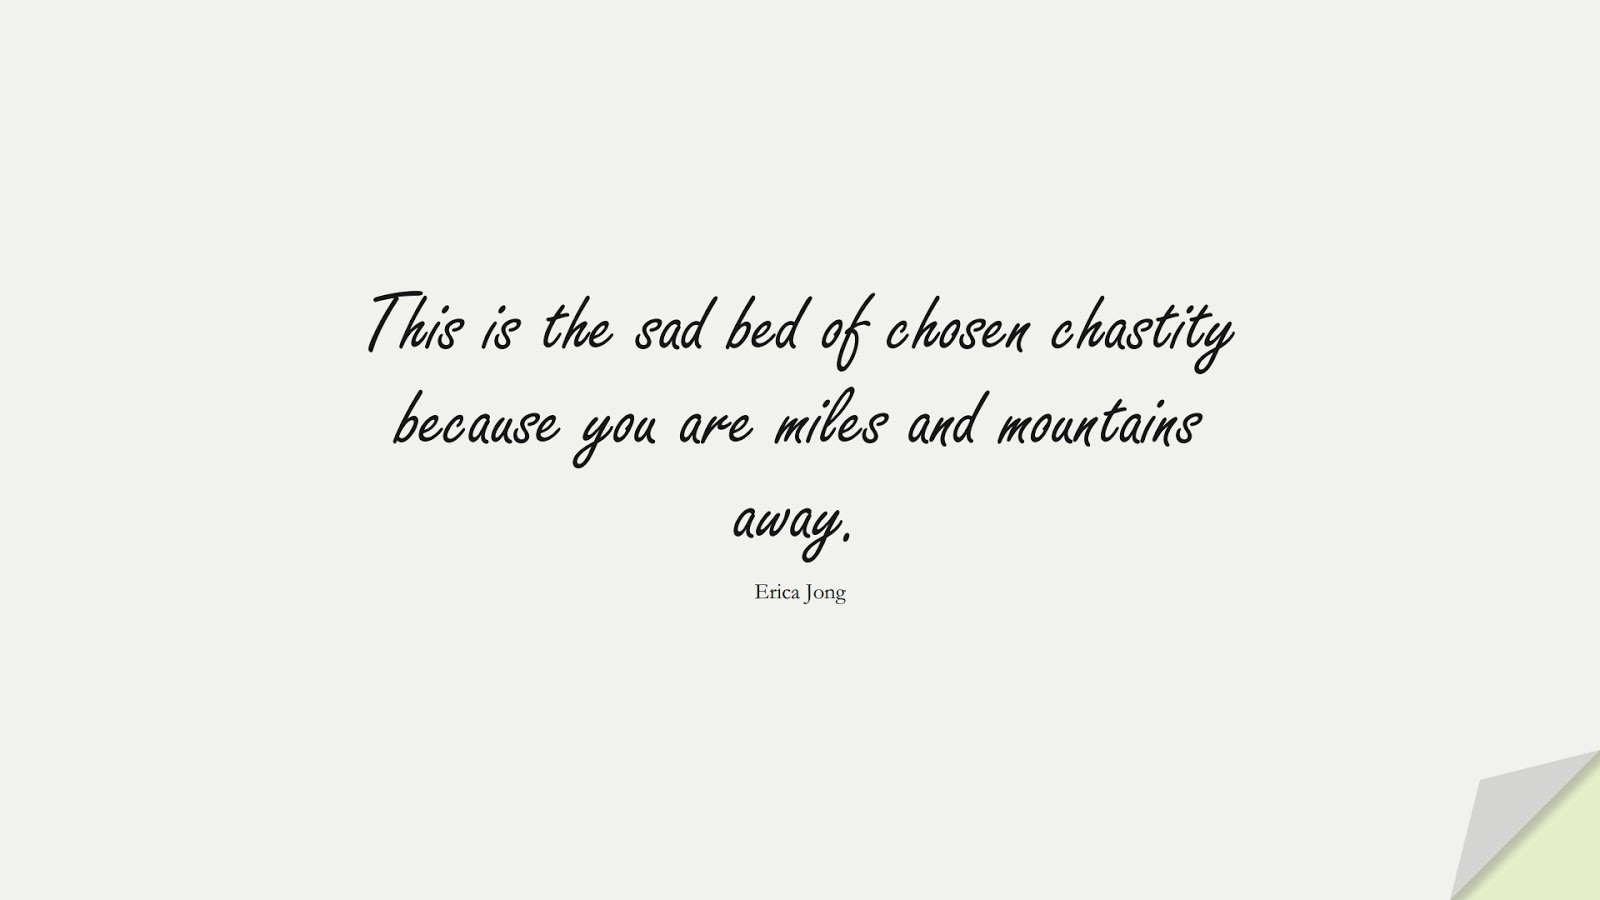 This is the sad bed of chosen chastity because you are miles and mountains away. (Erica Jong);  #LoveQuotes